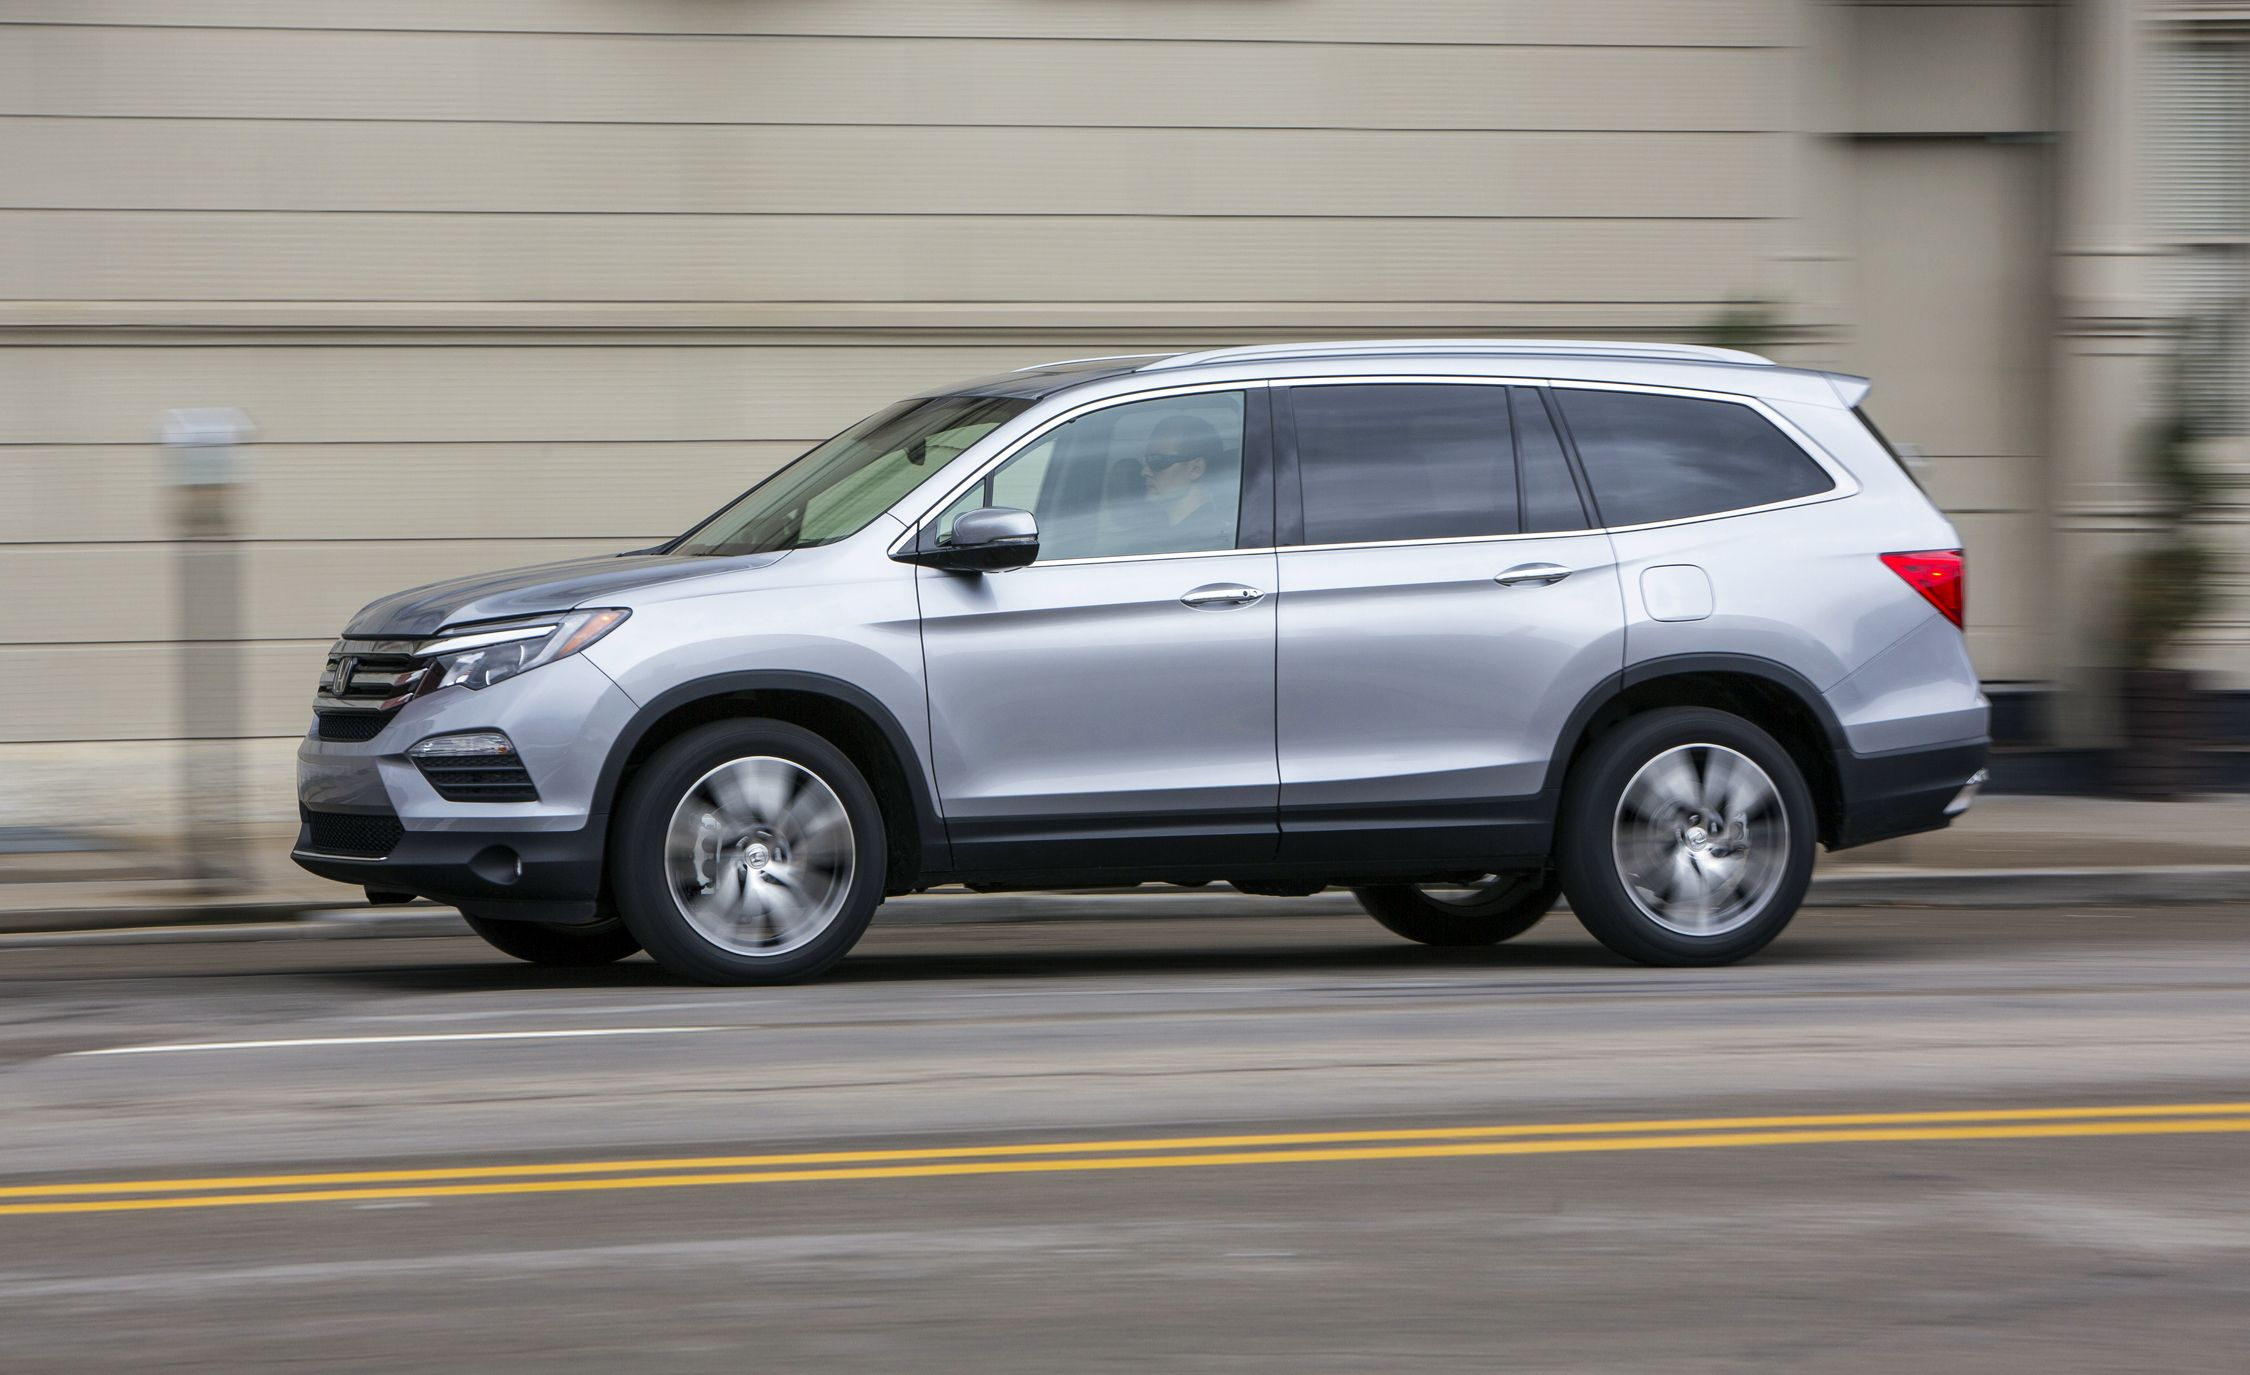 2018 Honda Pilot | In-Depth Model Review | Car and Driver